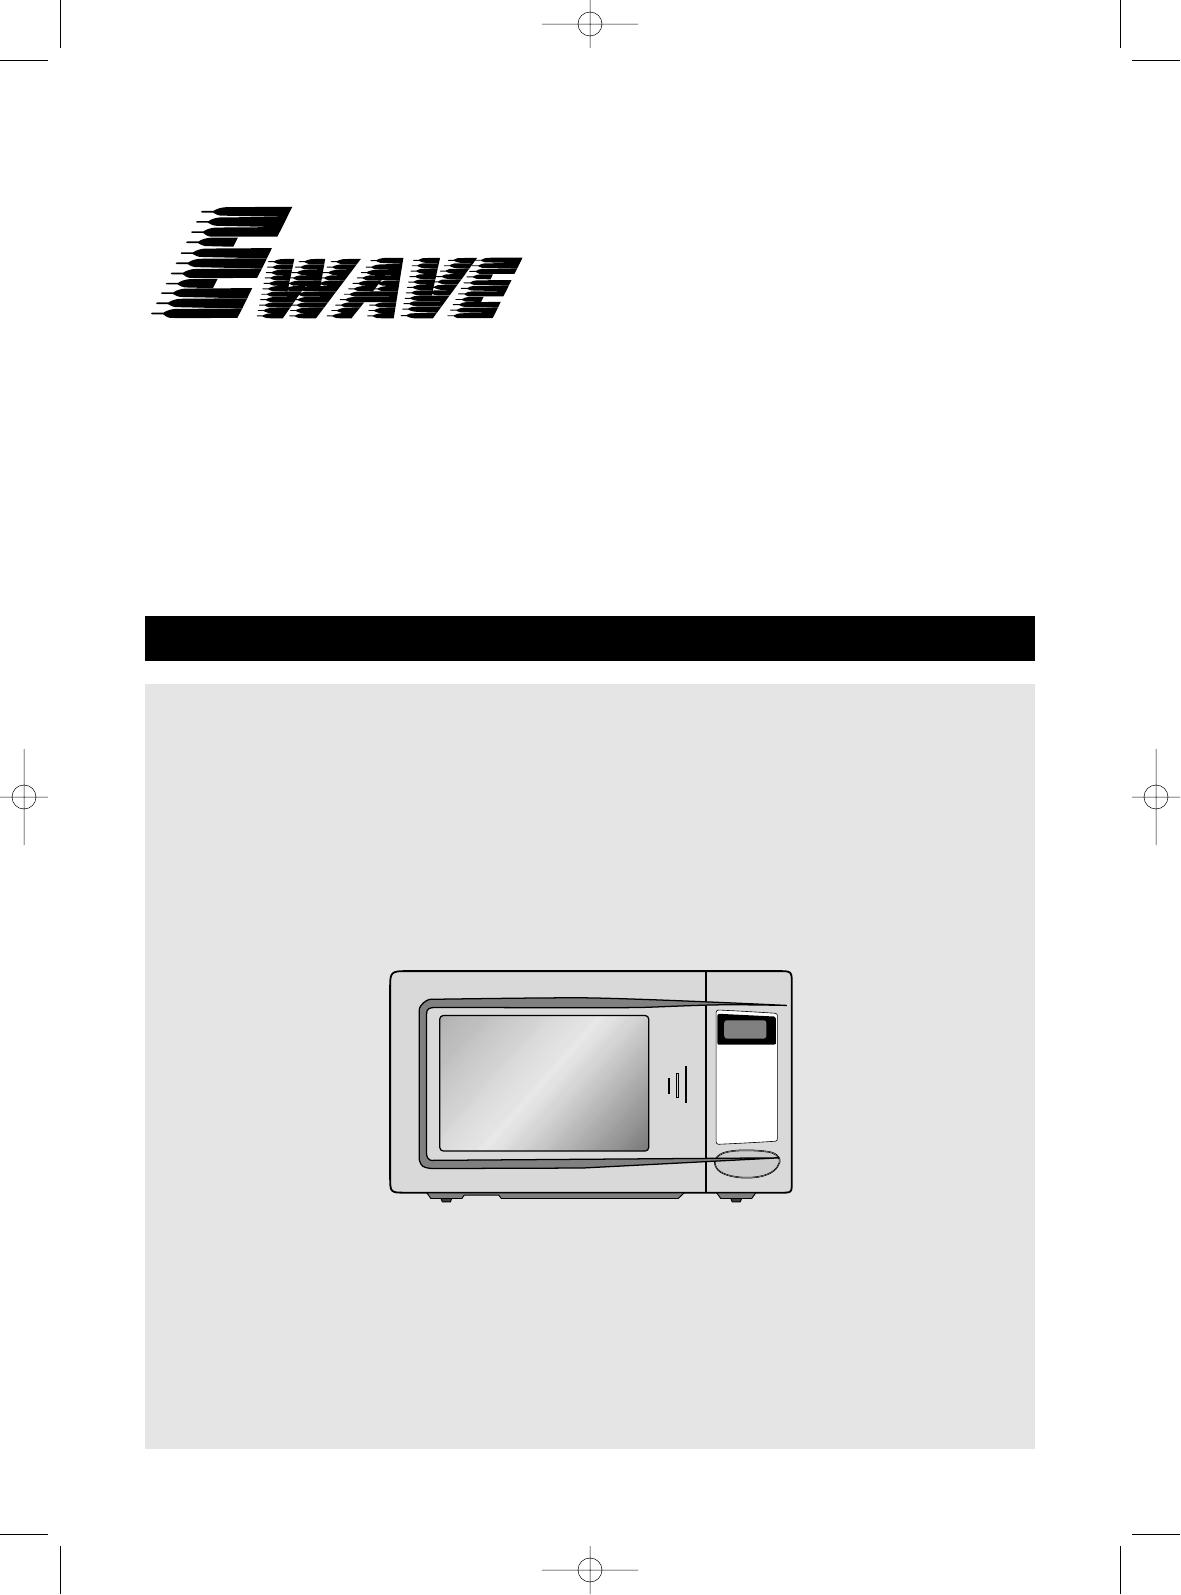 magic chef microwave oven manual